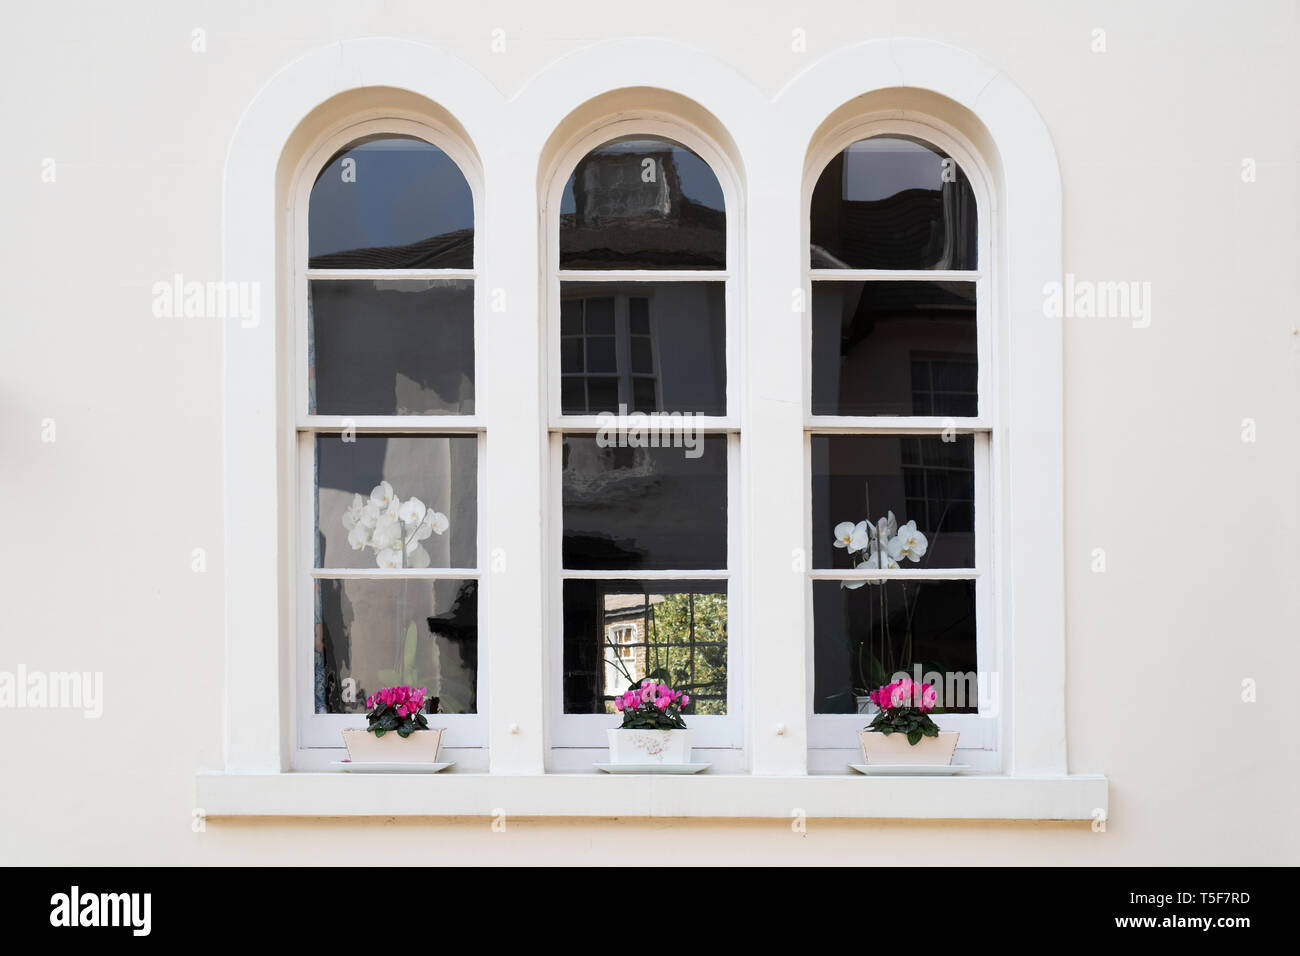 Window boxes and arched house windows in Victoria Grove, Kensington, London, England - Stock Image